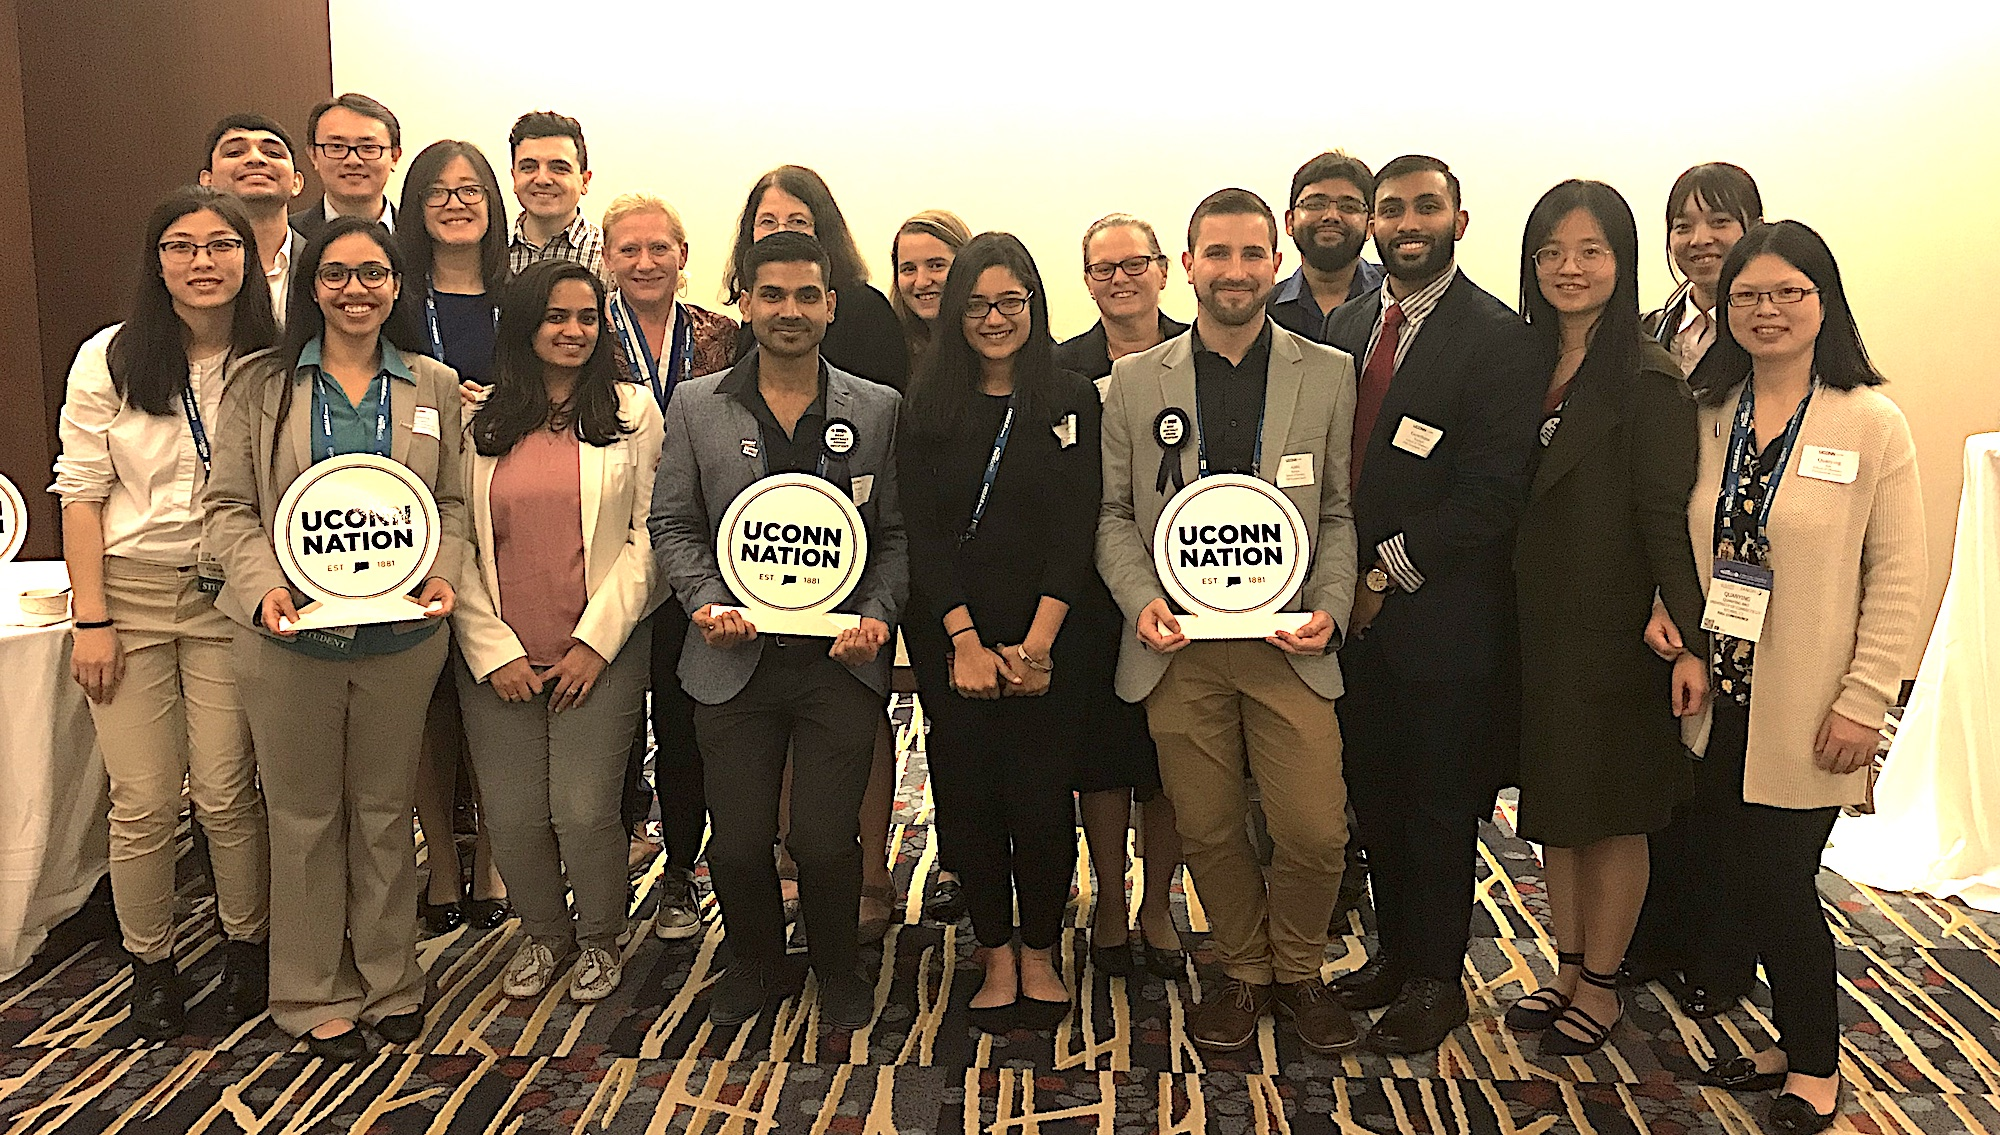 UConn Pharmaceutical Sciences Students at Conference event